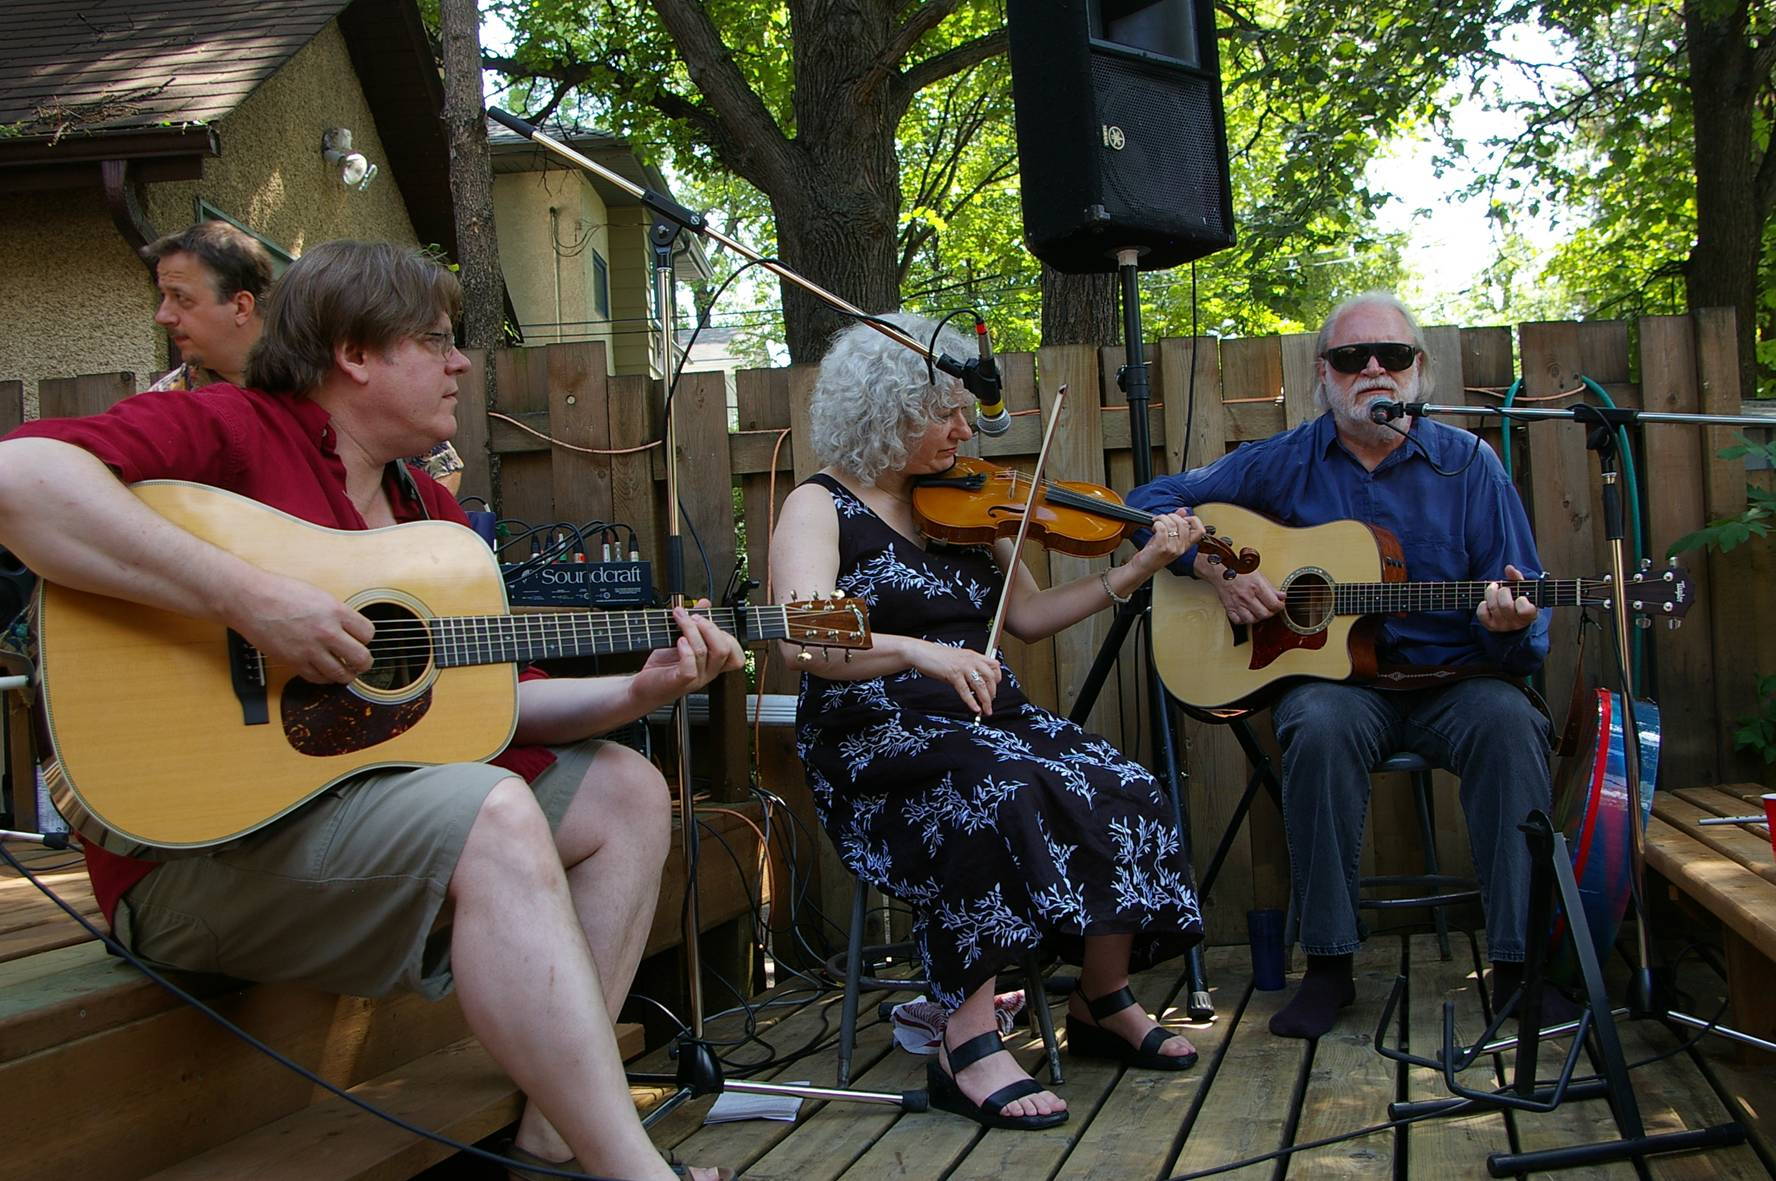 Sam Baardman,  Susan Israel and Dave Clement provided music for our wedding.  Winnipeg, Manitoba, Canada